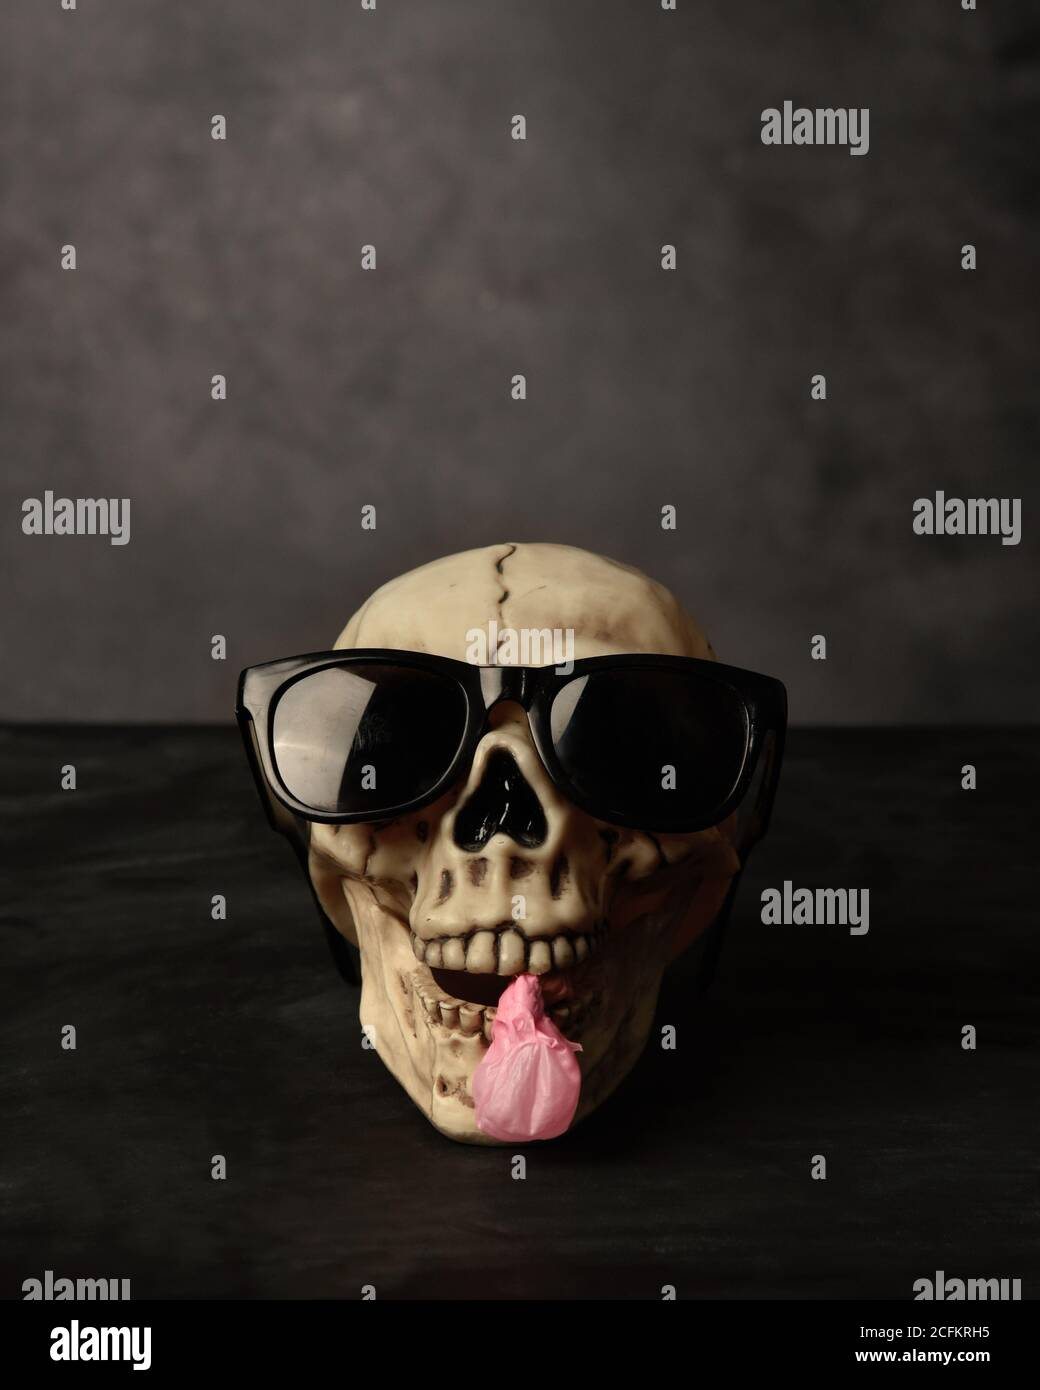 A skull halloween prop is wearing sunglasses with a popped gum bubble in the mouth for a festive seasonal party concept. Stock Photo